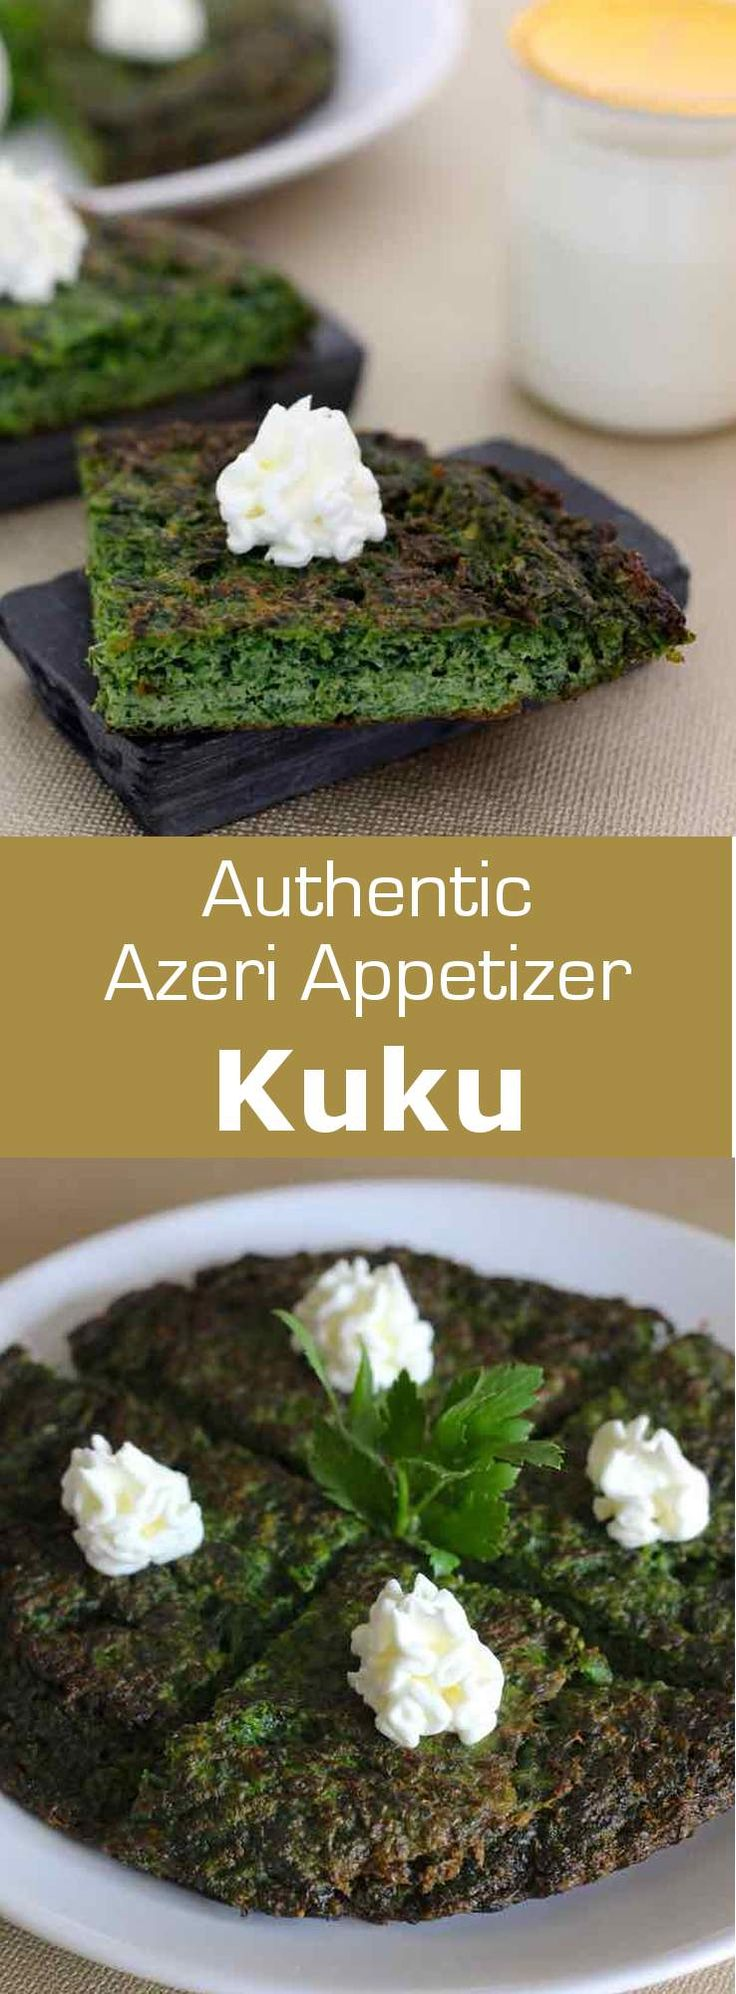 38 best 196 international breakfast recipes images on pinterest goyerti kks or kuku with fresh herbs is a delicious traditional azeri appetizer prepared with herbs arabic recipesasian food forumfinder Images